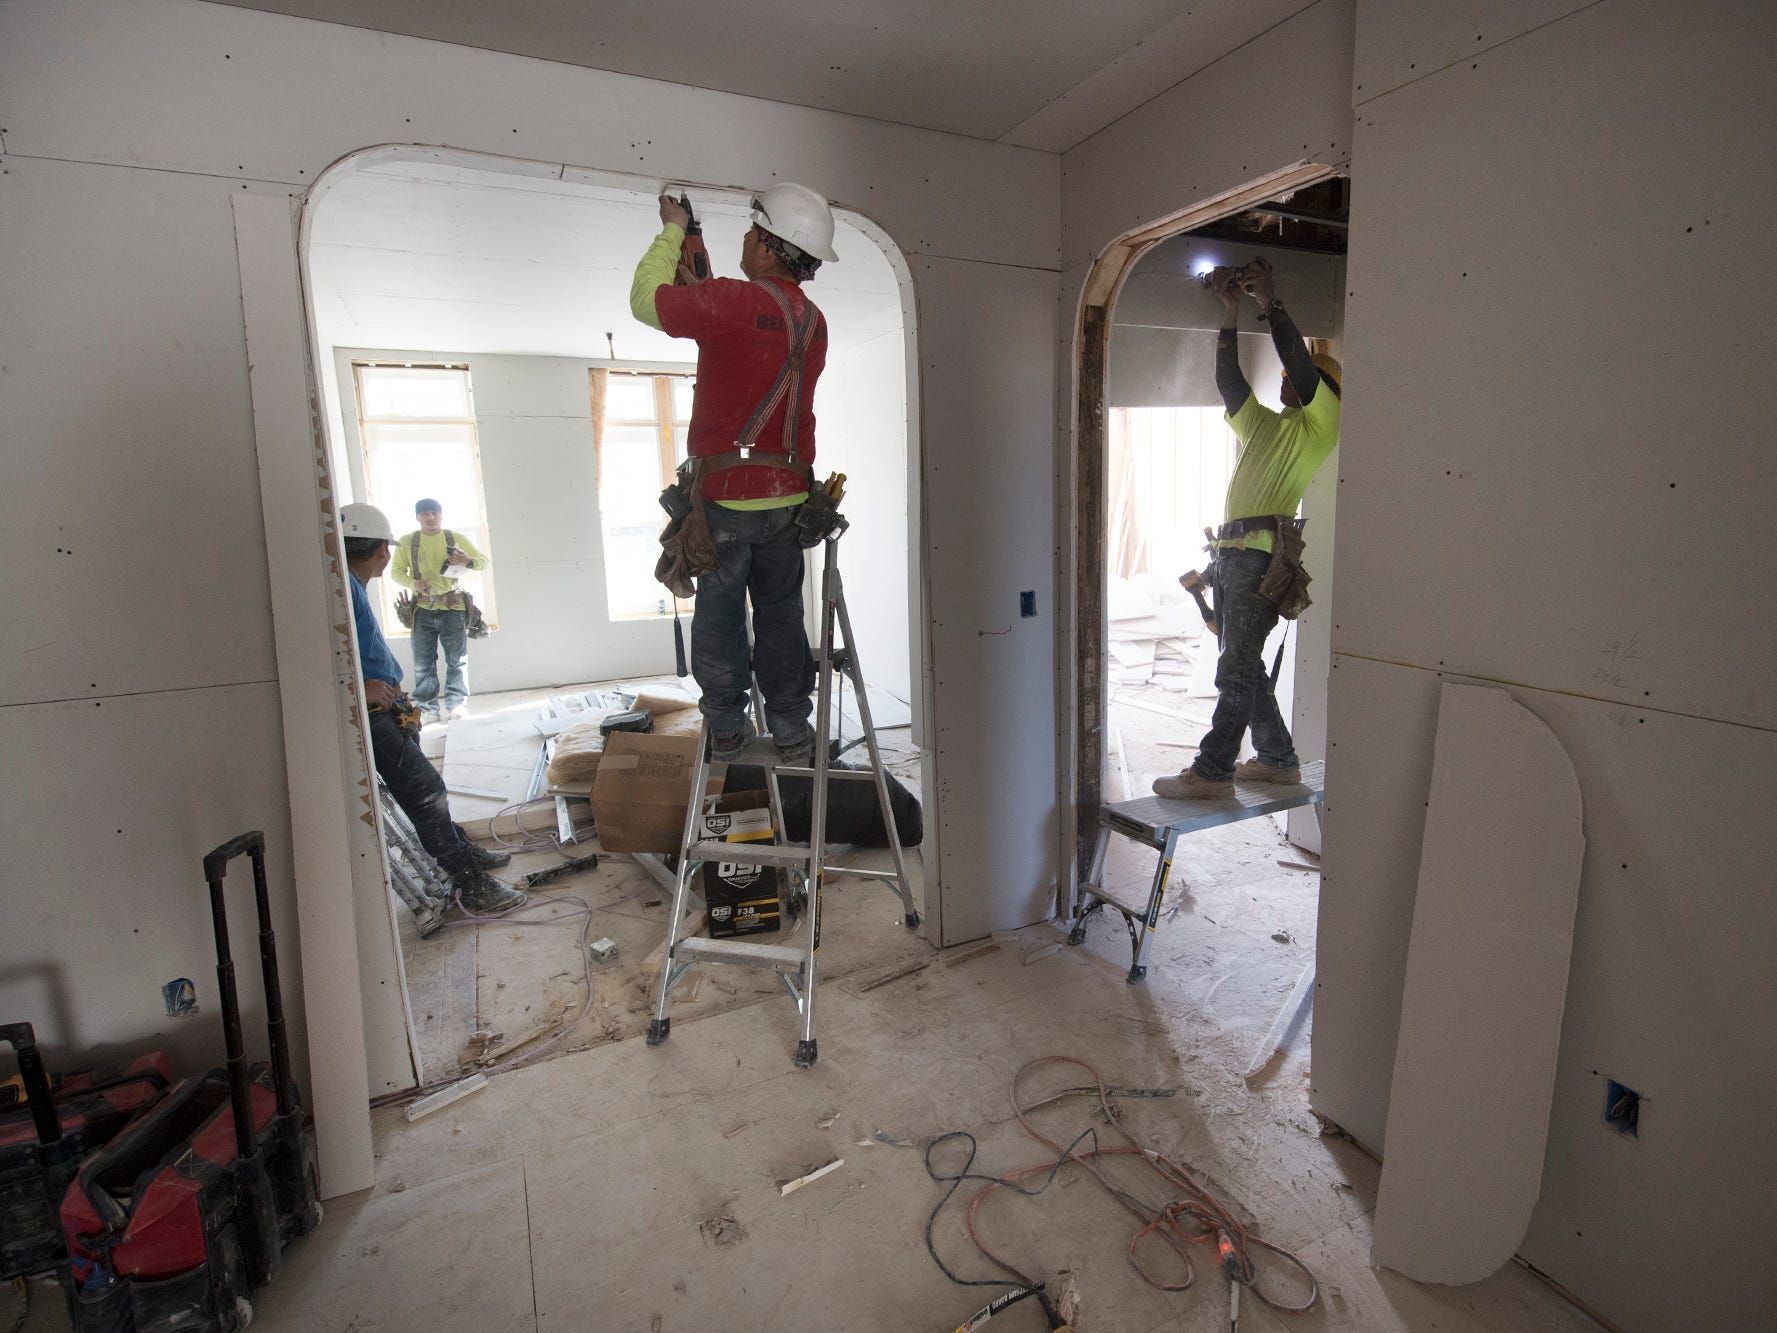 Workers install drywall at the Doll Building at 337 W. Market Street in York.